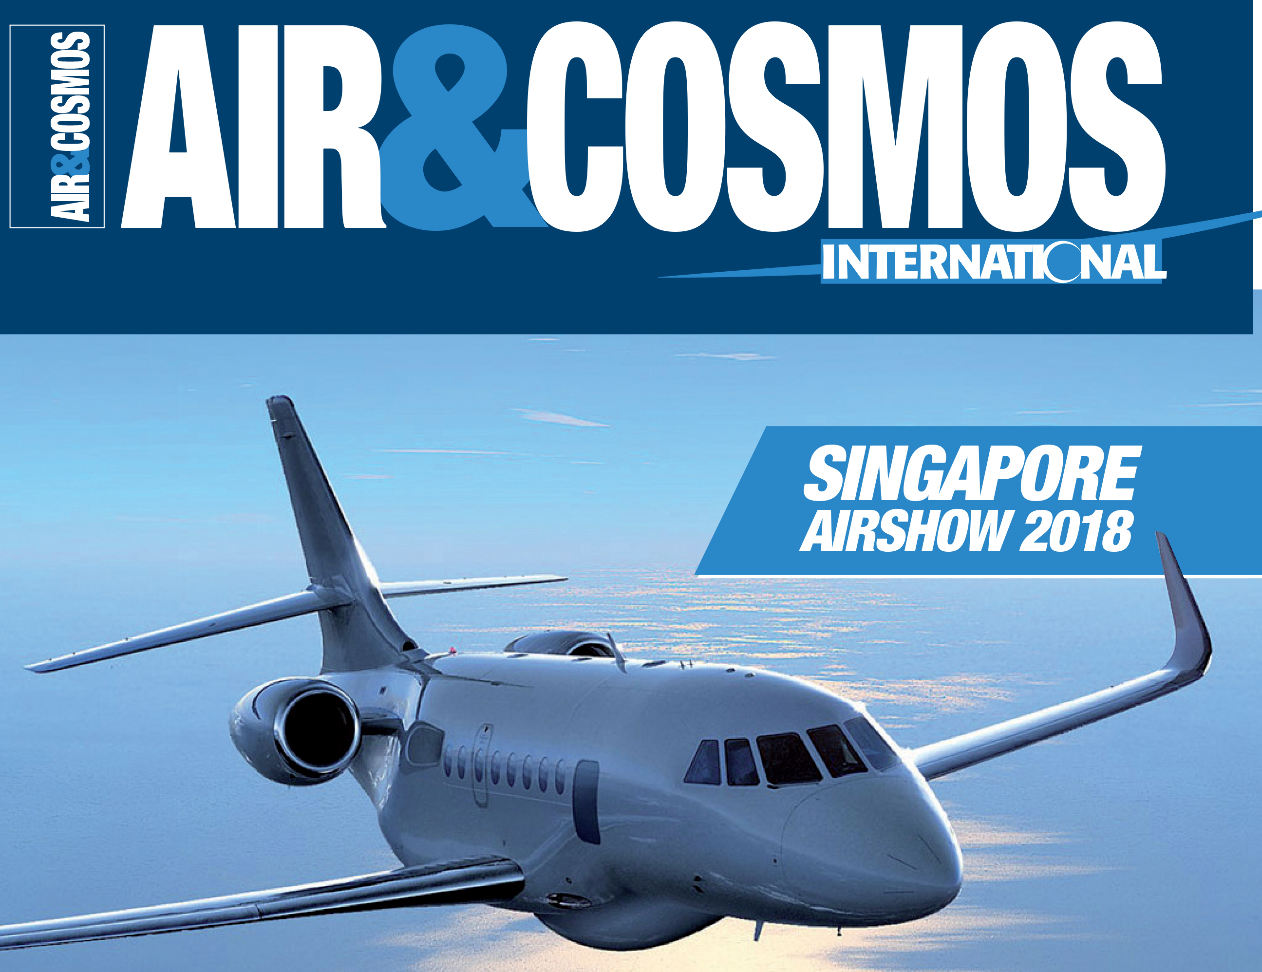 Air&Cosmos International digital magazine will be launched on 23rd February, targeting continental Europe, Middle East and Asia